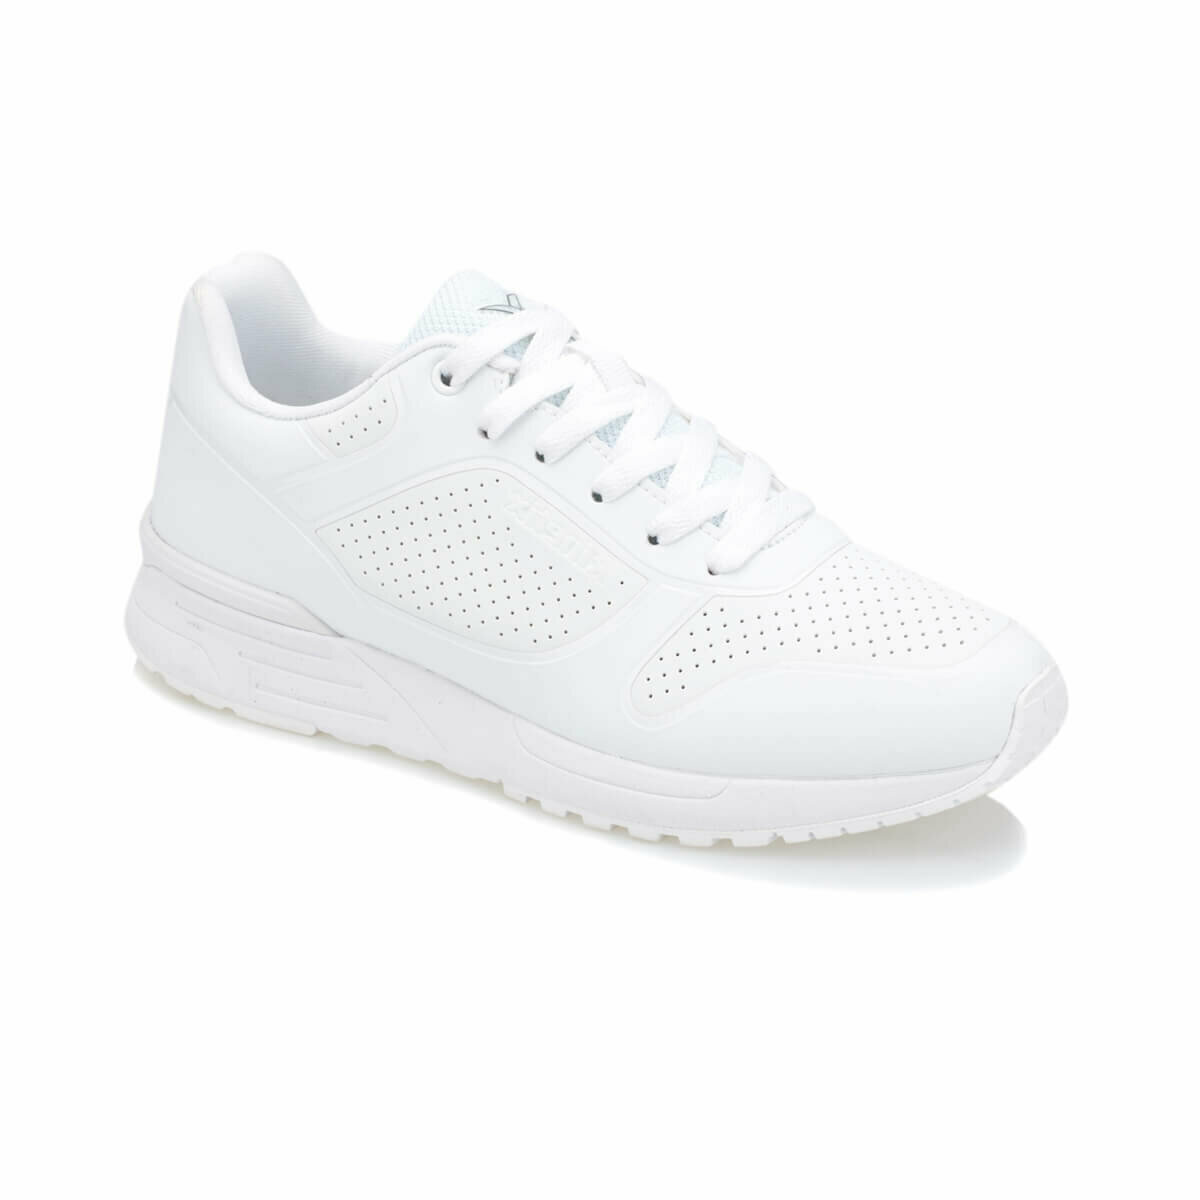 FLO Shoes Woman Sneakers White Platform Trainers Women Shoe Casual Tenis Feminino Zapatos De Mujer Zapatillas Womens Sneaker Basket Soft Breathable Fashion Footwear Shoes Кроссовки женские NORTON W KINETIX